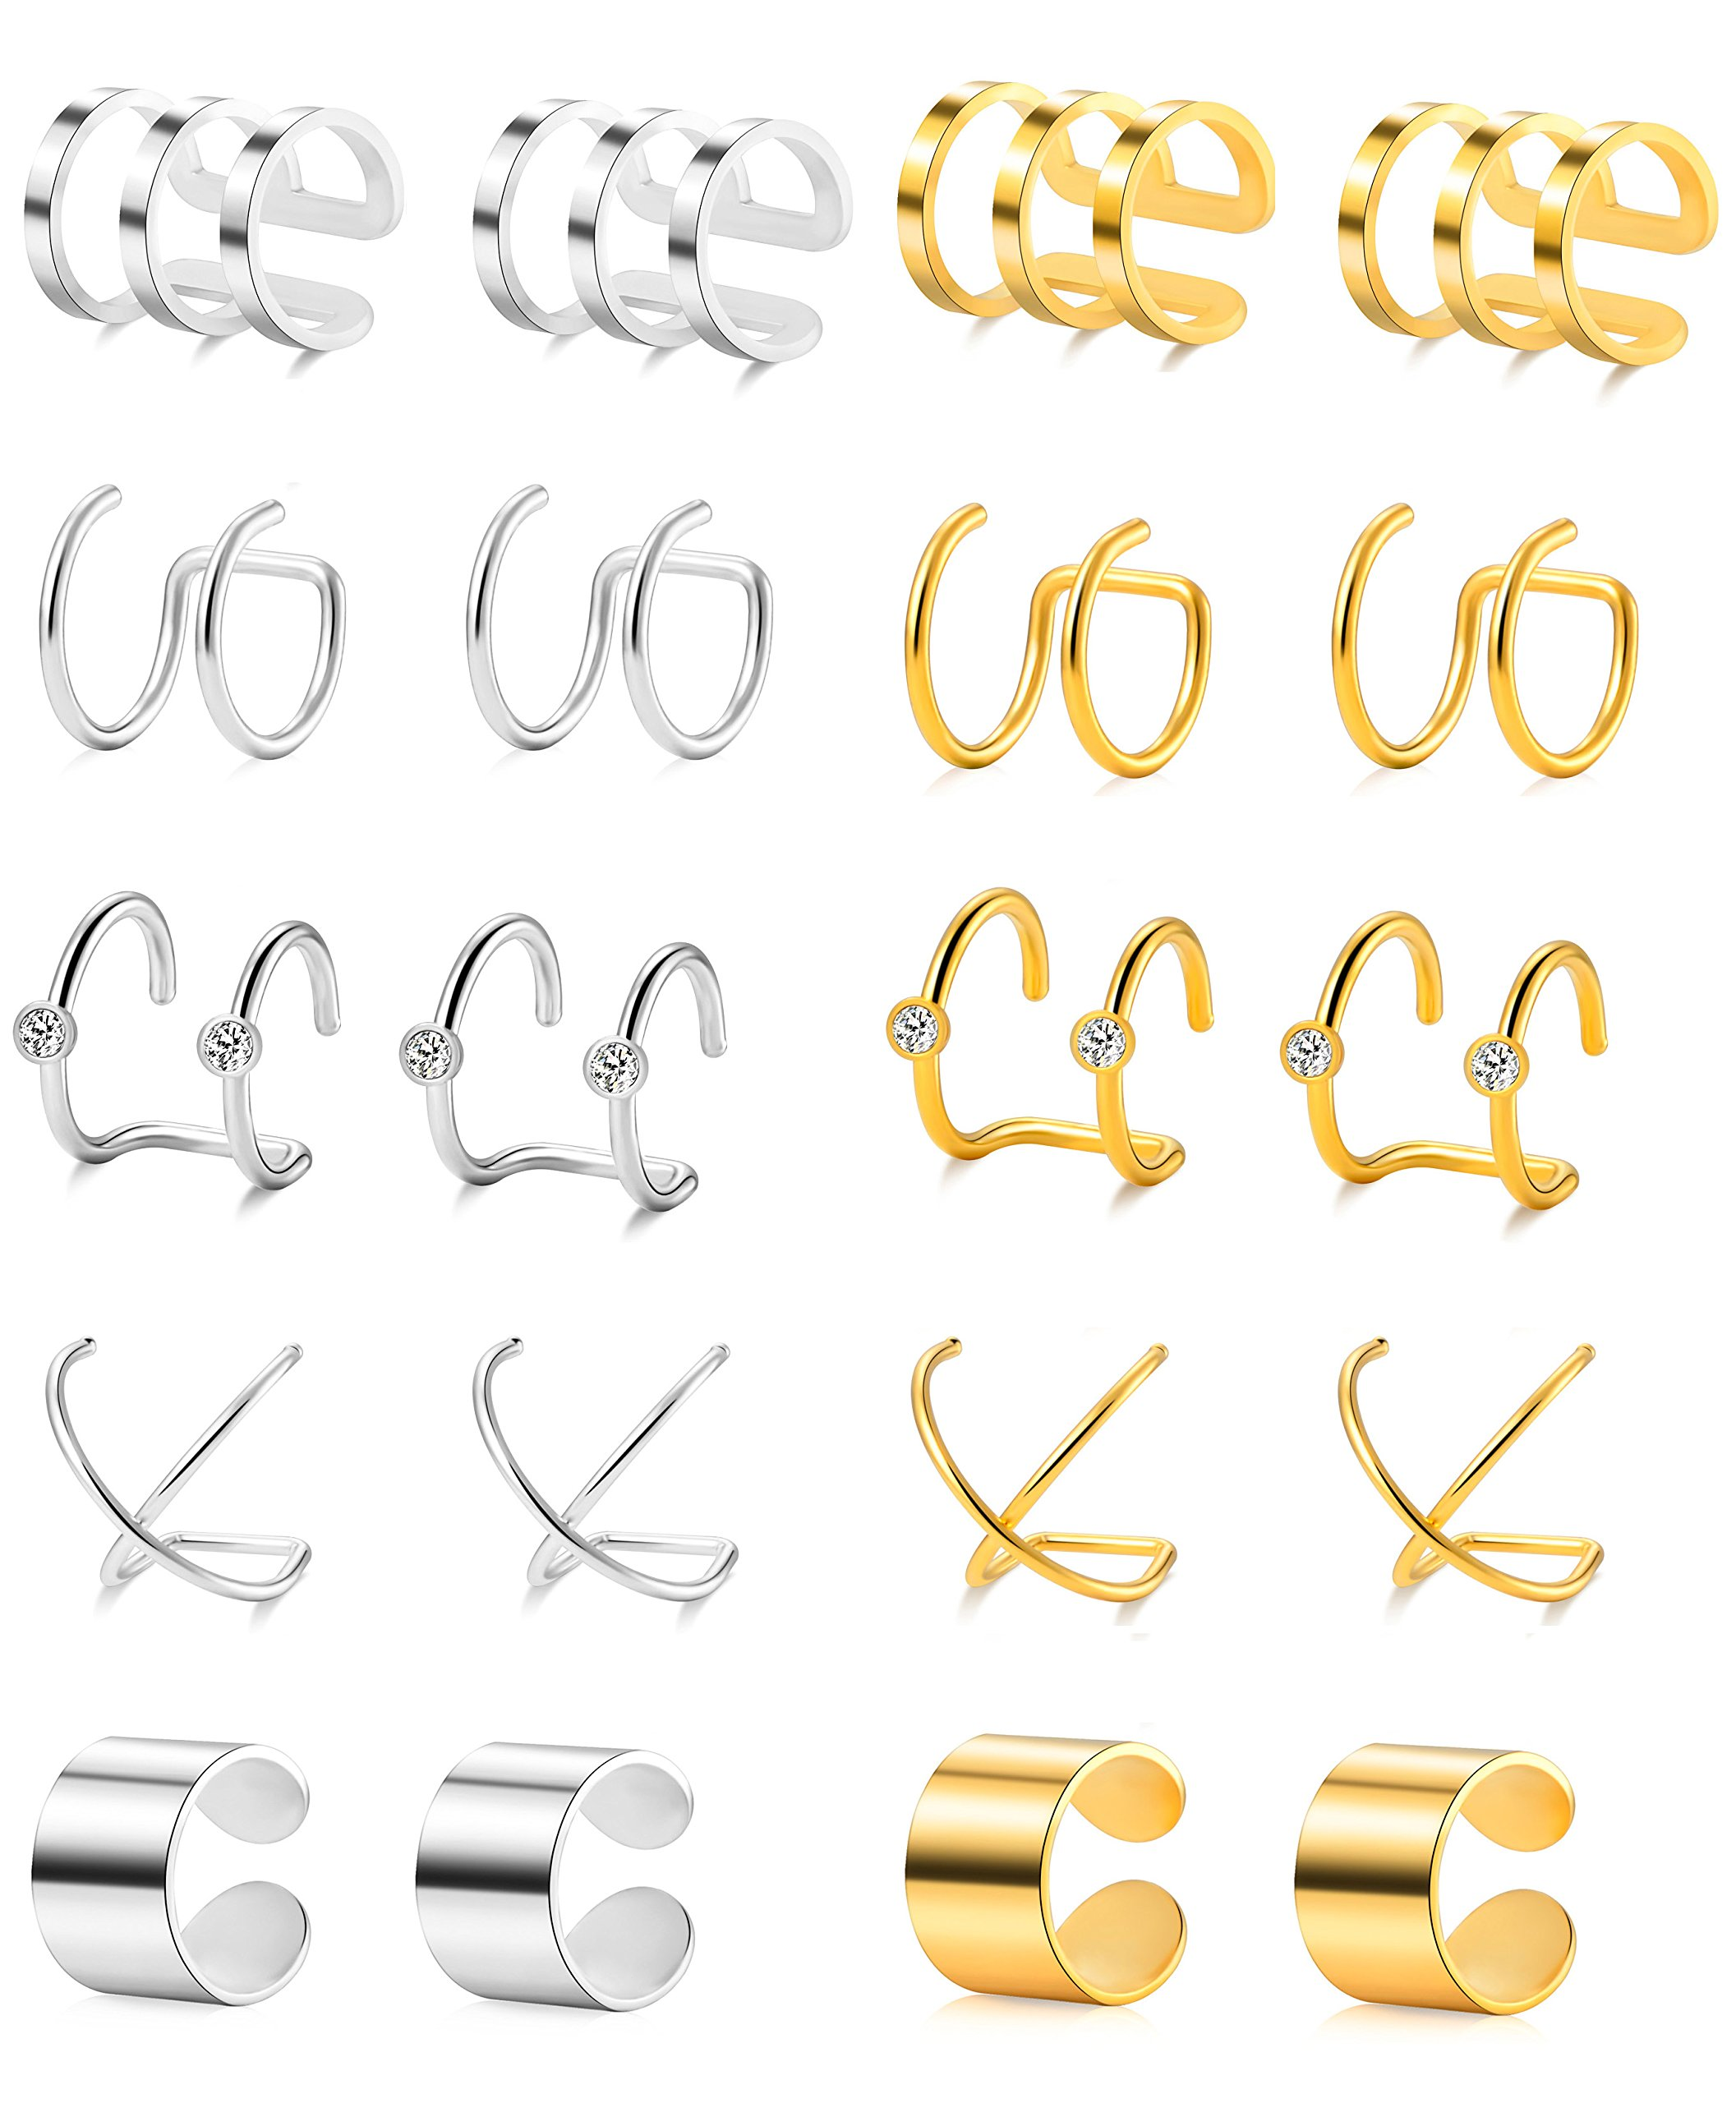 Tornito 10 Pairs Stainless Steel Ear Cuff Helix Cartilage Clip On Wrap Earrings Fake Nose Ring Non-Piercing Adjustable (A0: 10 Pairs) by Tornito